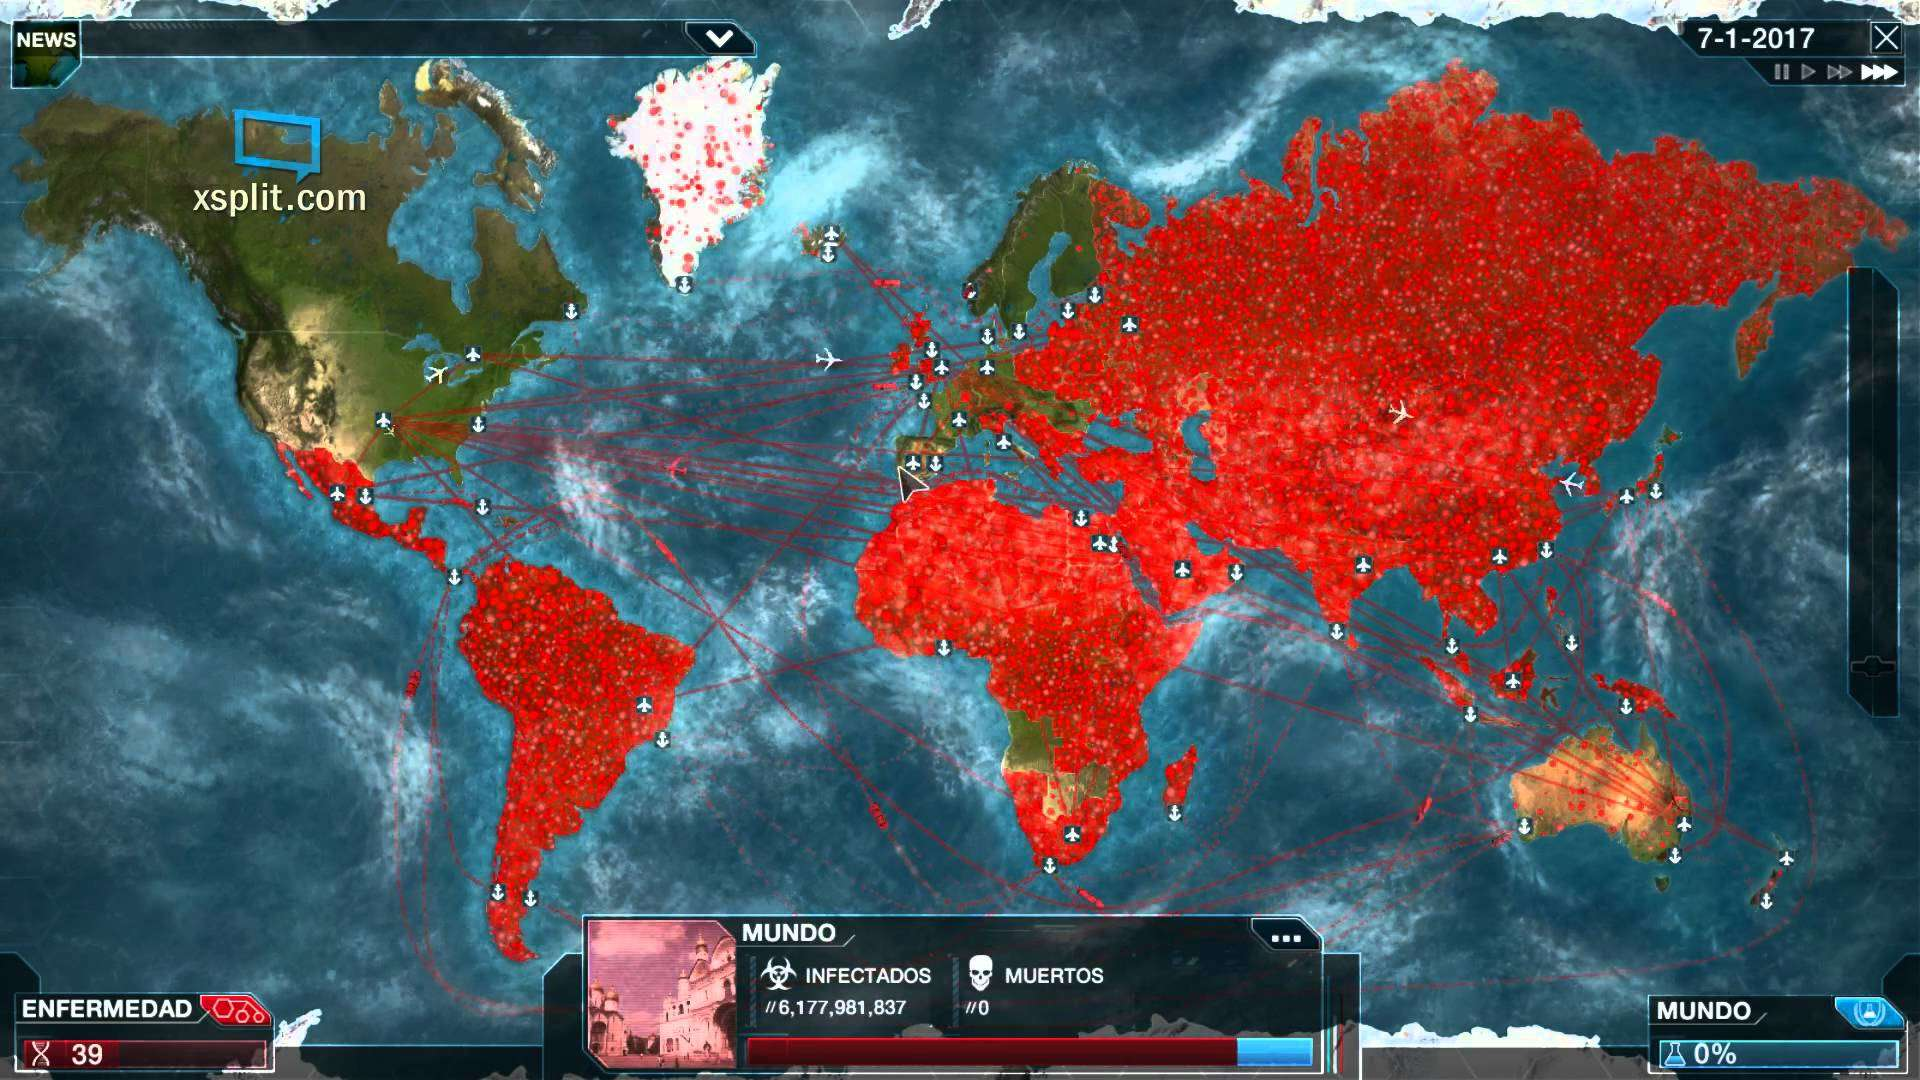 plague-inc-full-apk